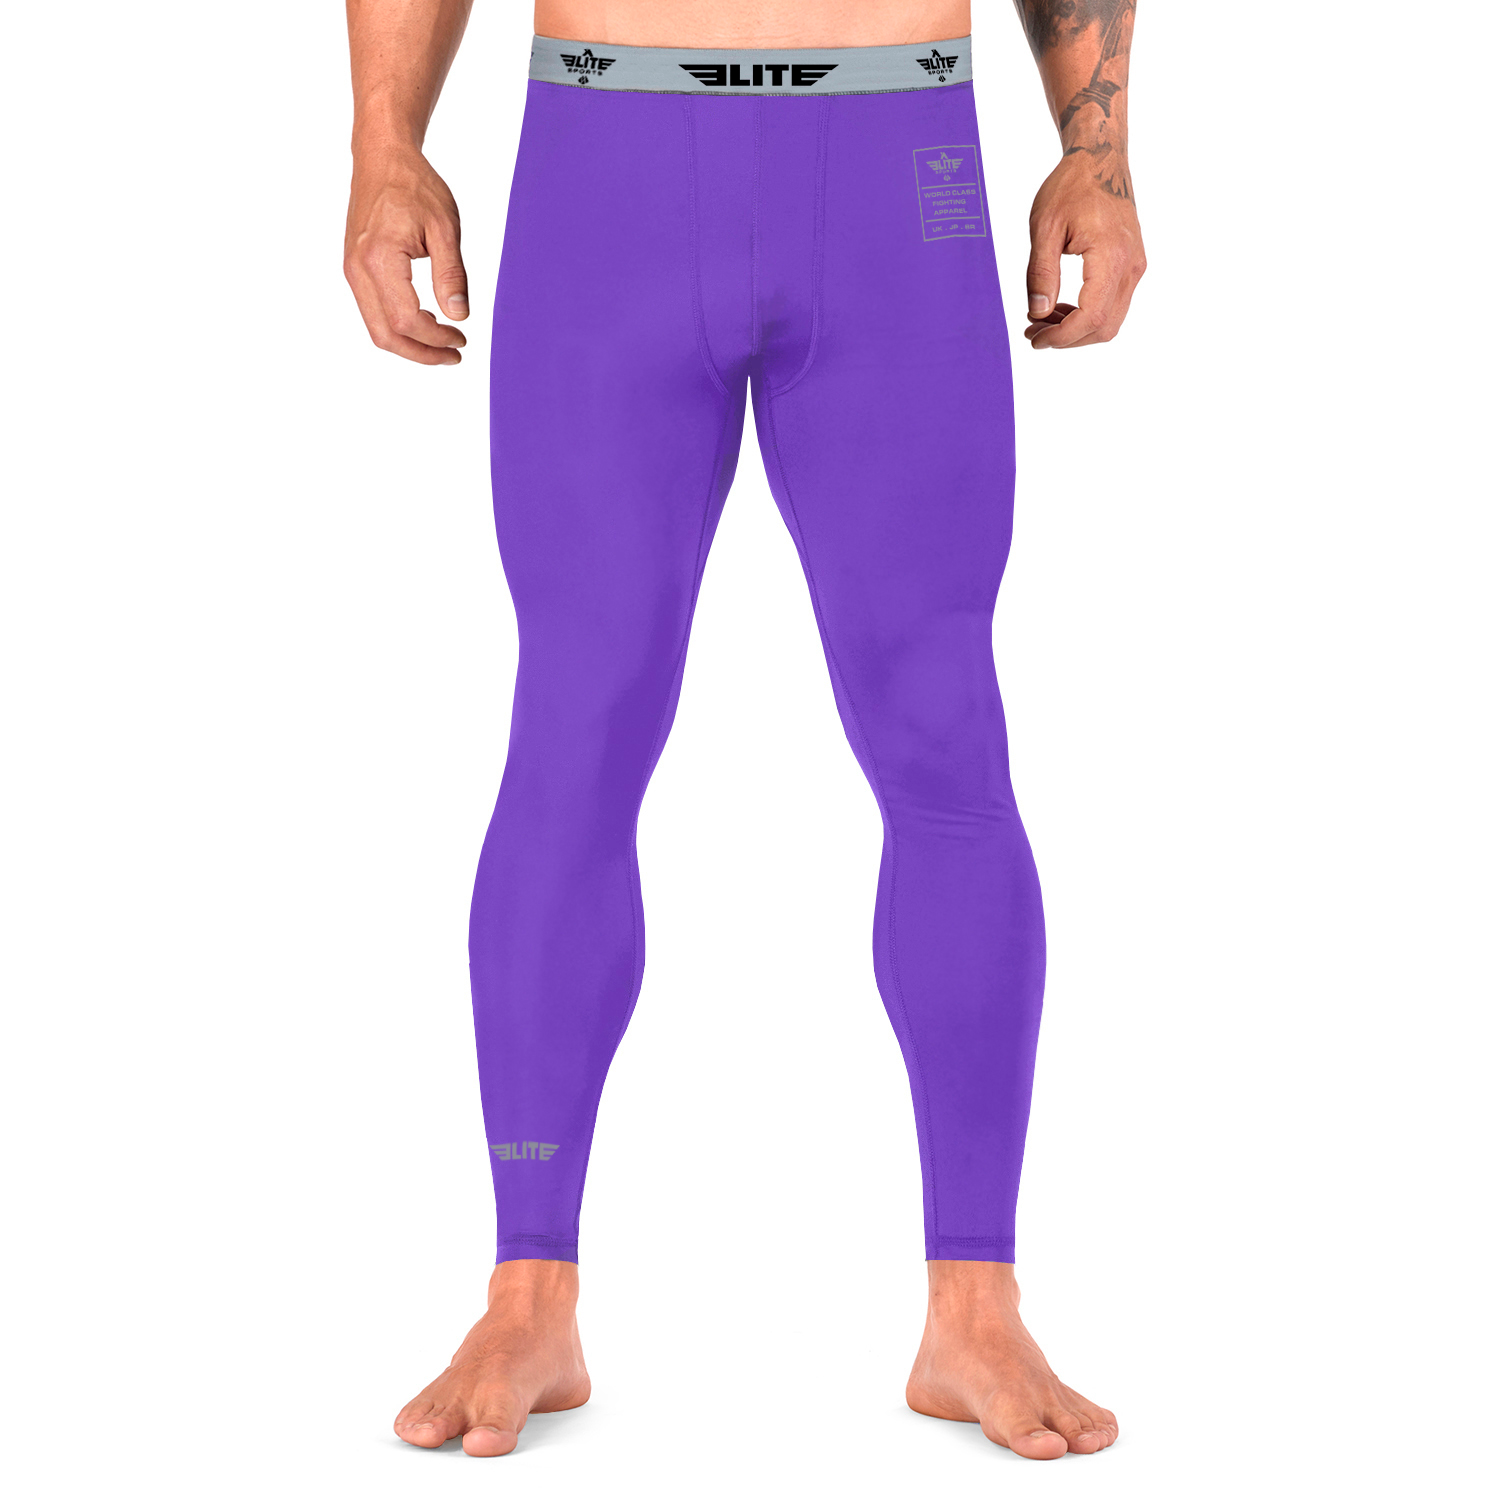 Elite Sports Plain Purple Compression Wrestling Spat Pants